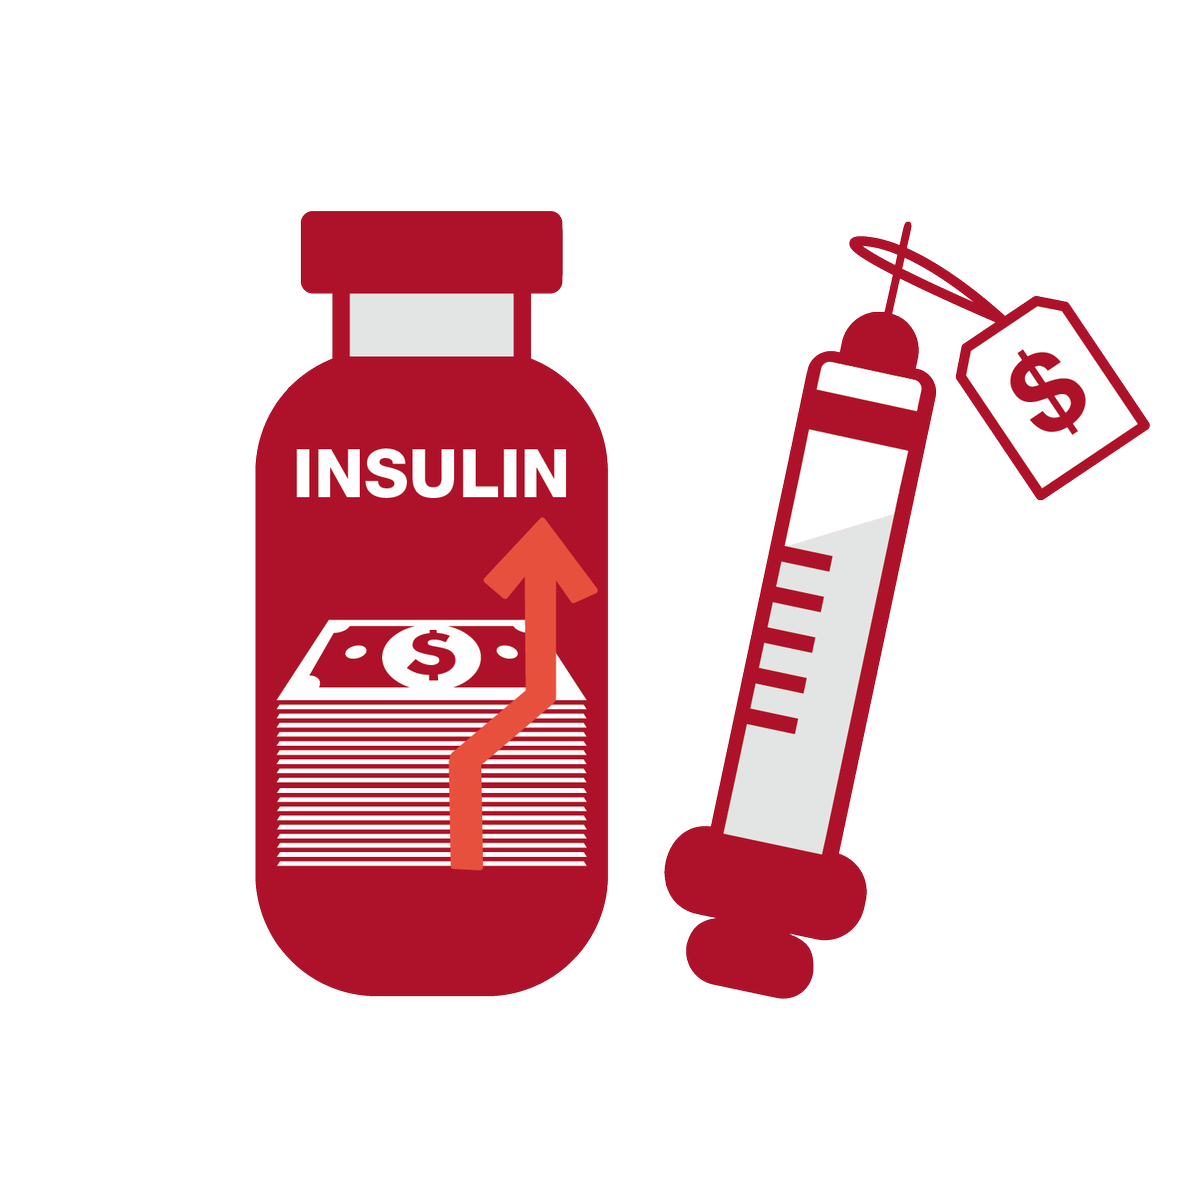 test Twitter Media - Thank you @SenatorShaheen @SenatorCollins @SenatorCarper and @SenKevinCramer for introducing the Insulin Price Reduction Act. We strongly support this legislation which will lower the cost of insulin for people living with #diabetes! https://t.co/Hg7KVY2FhT #MakeInsulinAffordable https://t.co/mUt1HKysTo